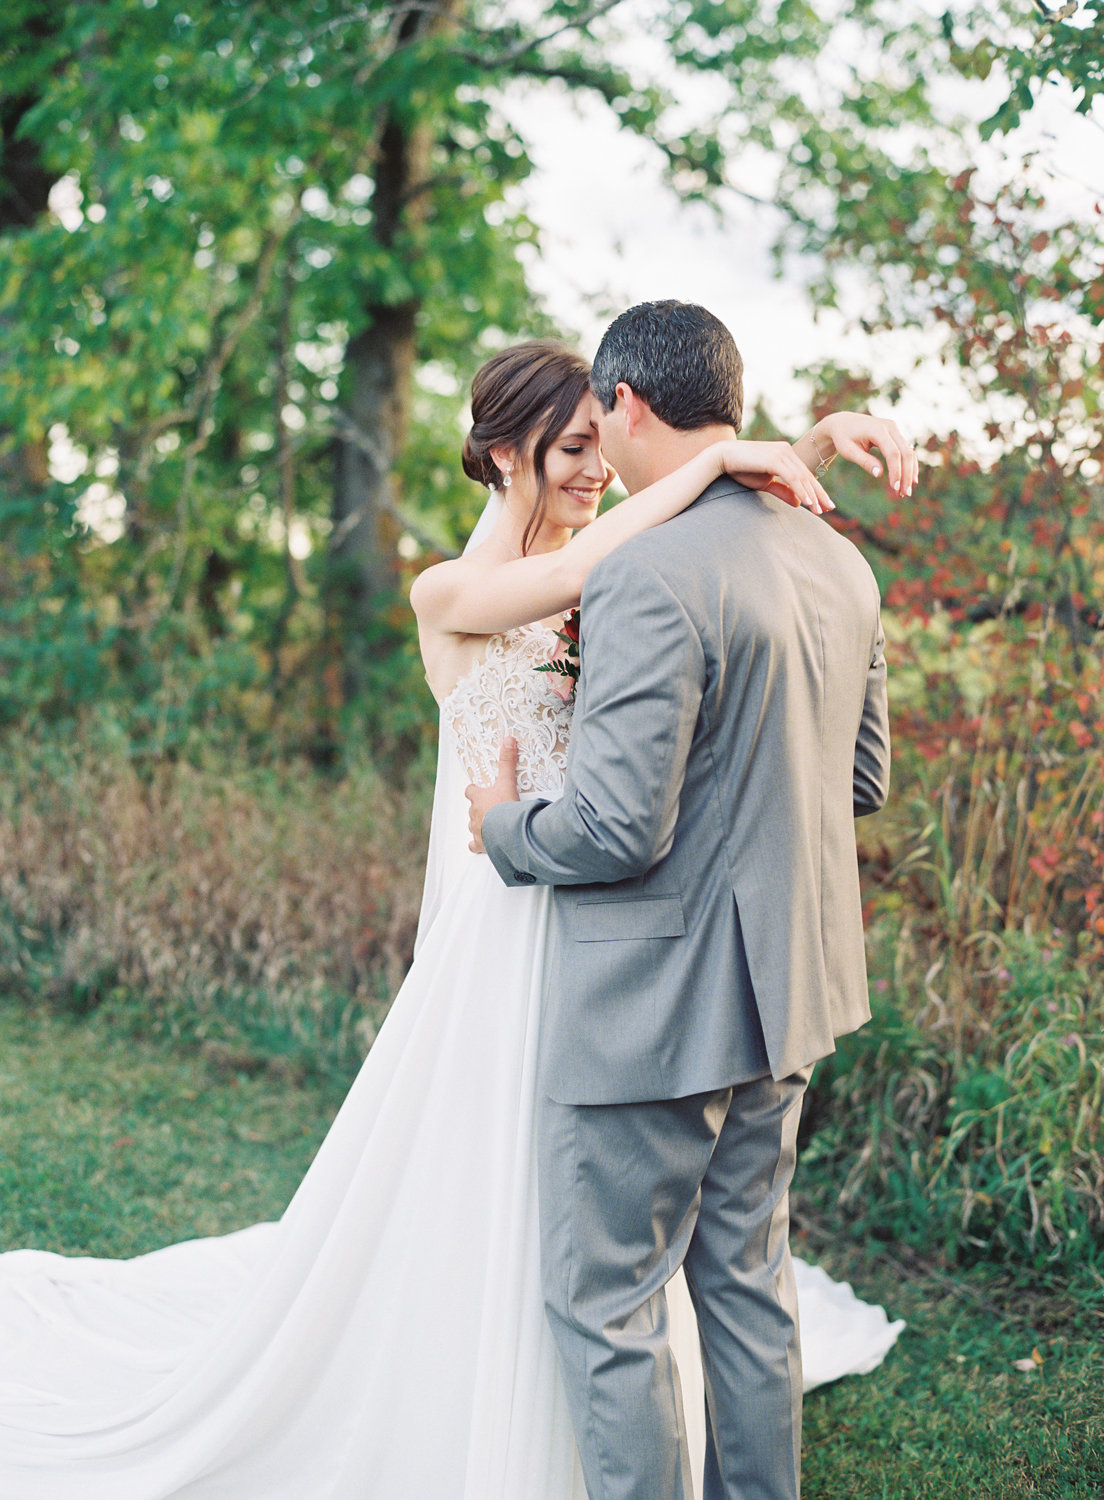 Jacqueline Anne Photography - Ottawa vineyard wedding-18